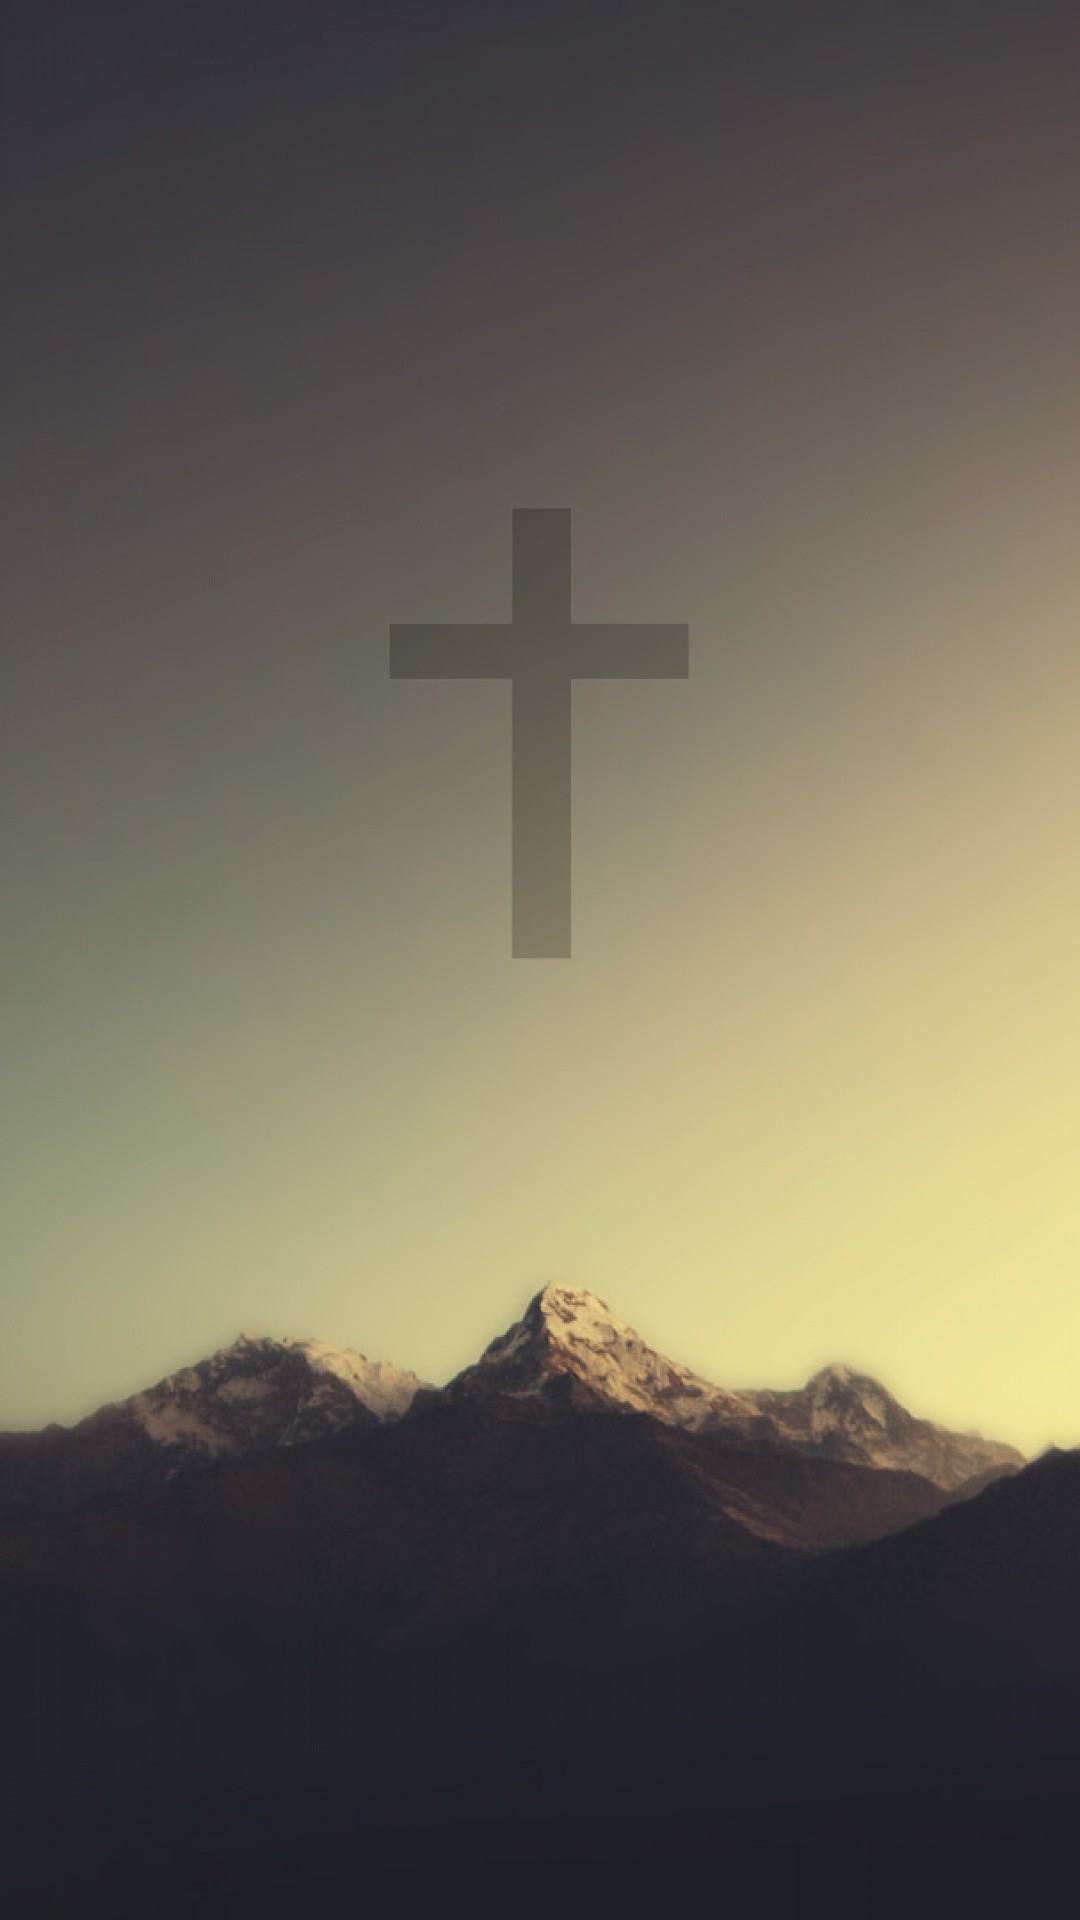 Cool cross wallpaper iphone voltagebd Image collections